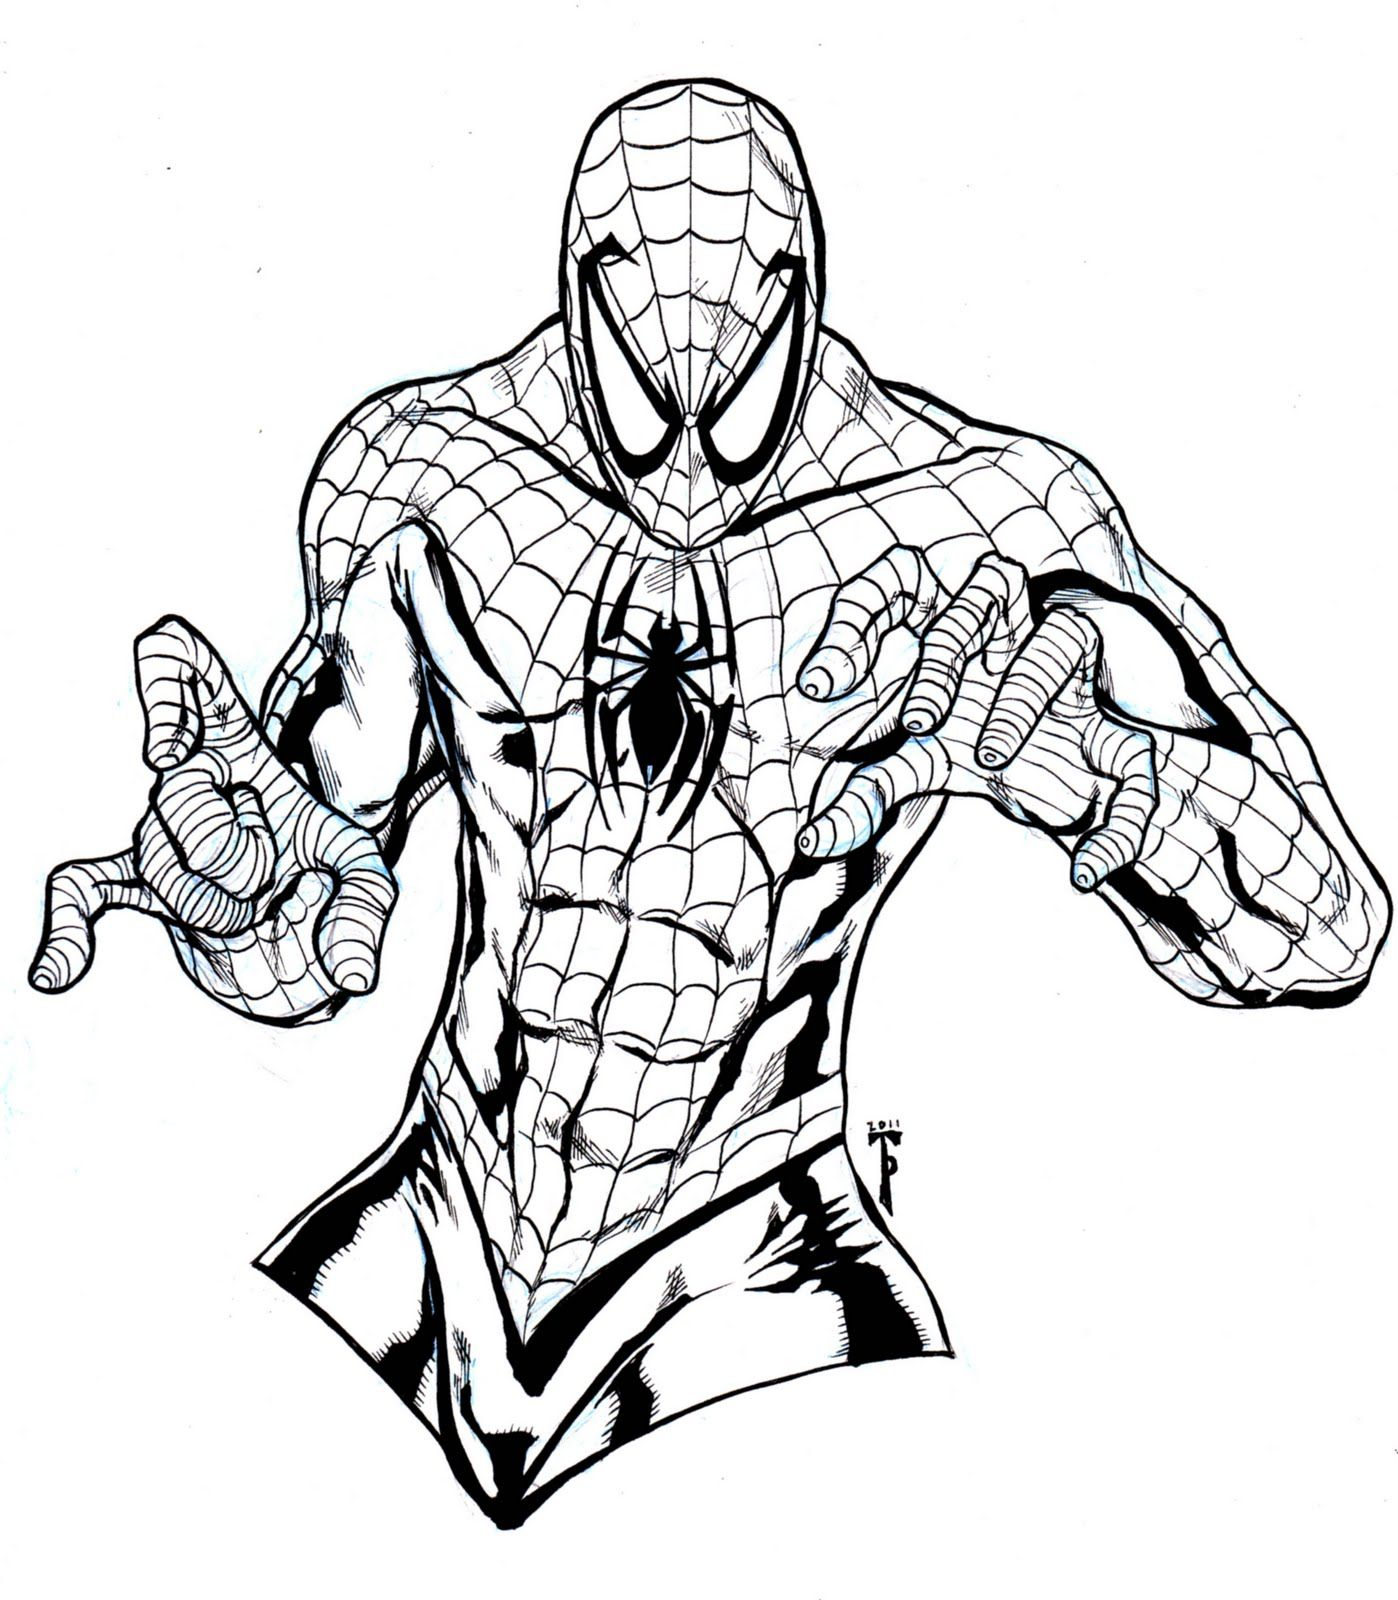 Spiderman online coloring pages for kids - Free Printable Spiderman Coloring Pages For Kids